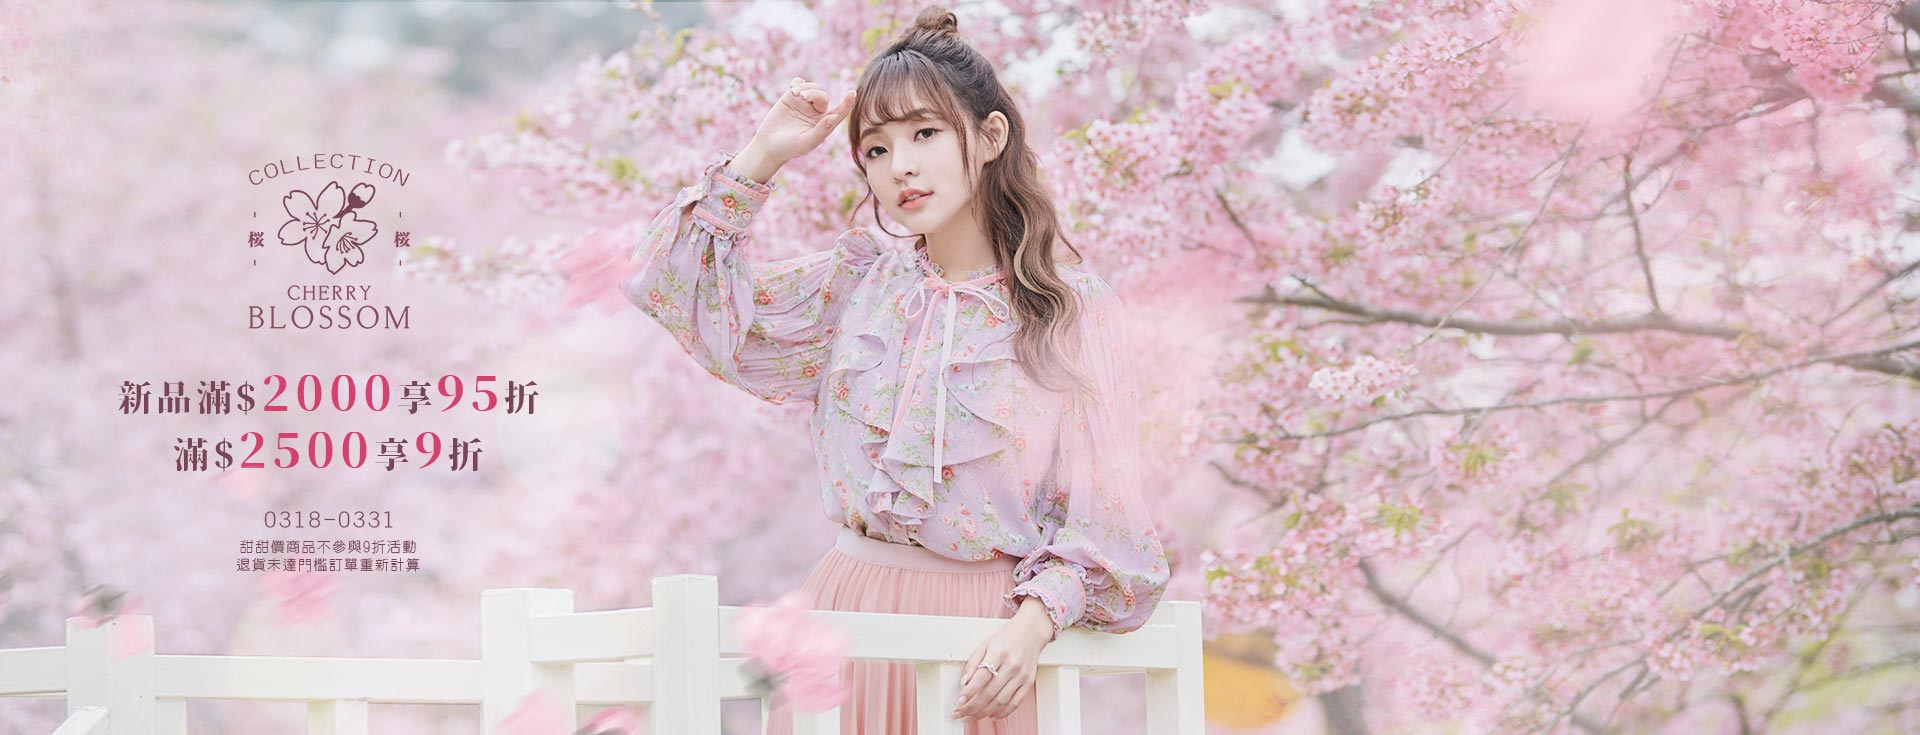 。03/18 Cherry Blossom Collection